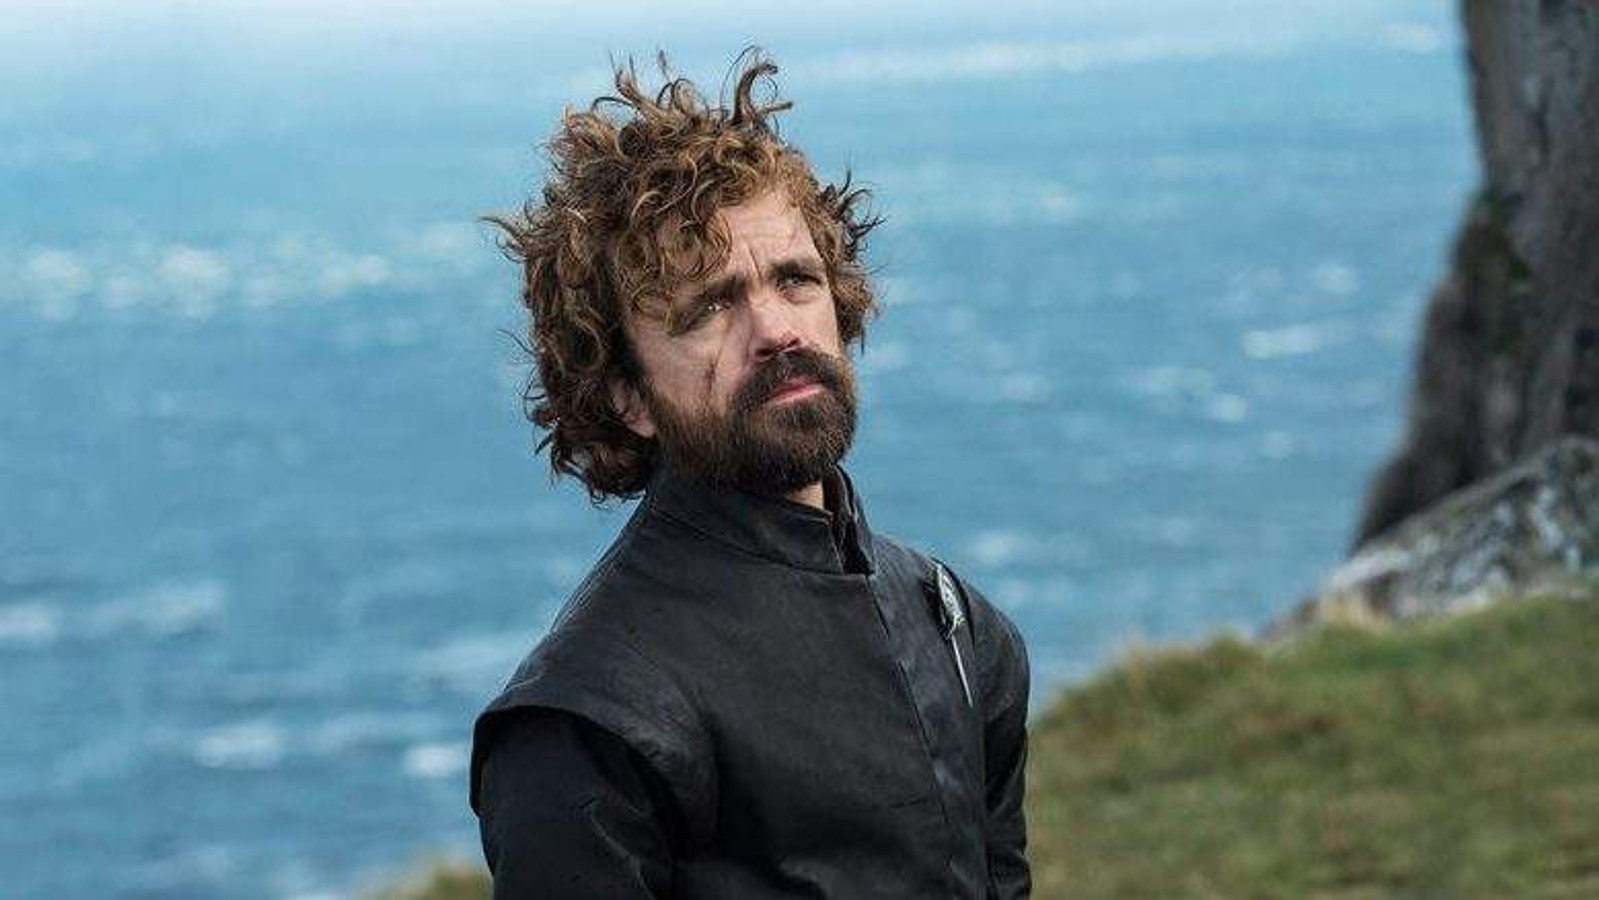 Bluebeards' Tyrion Lannister Theory